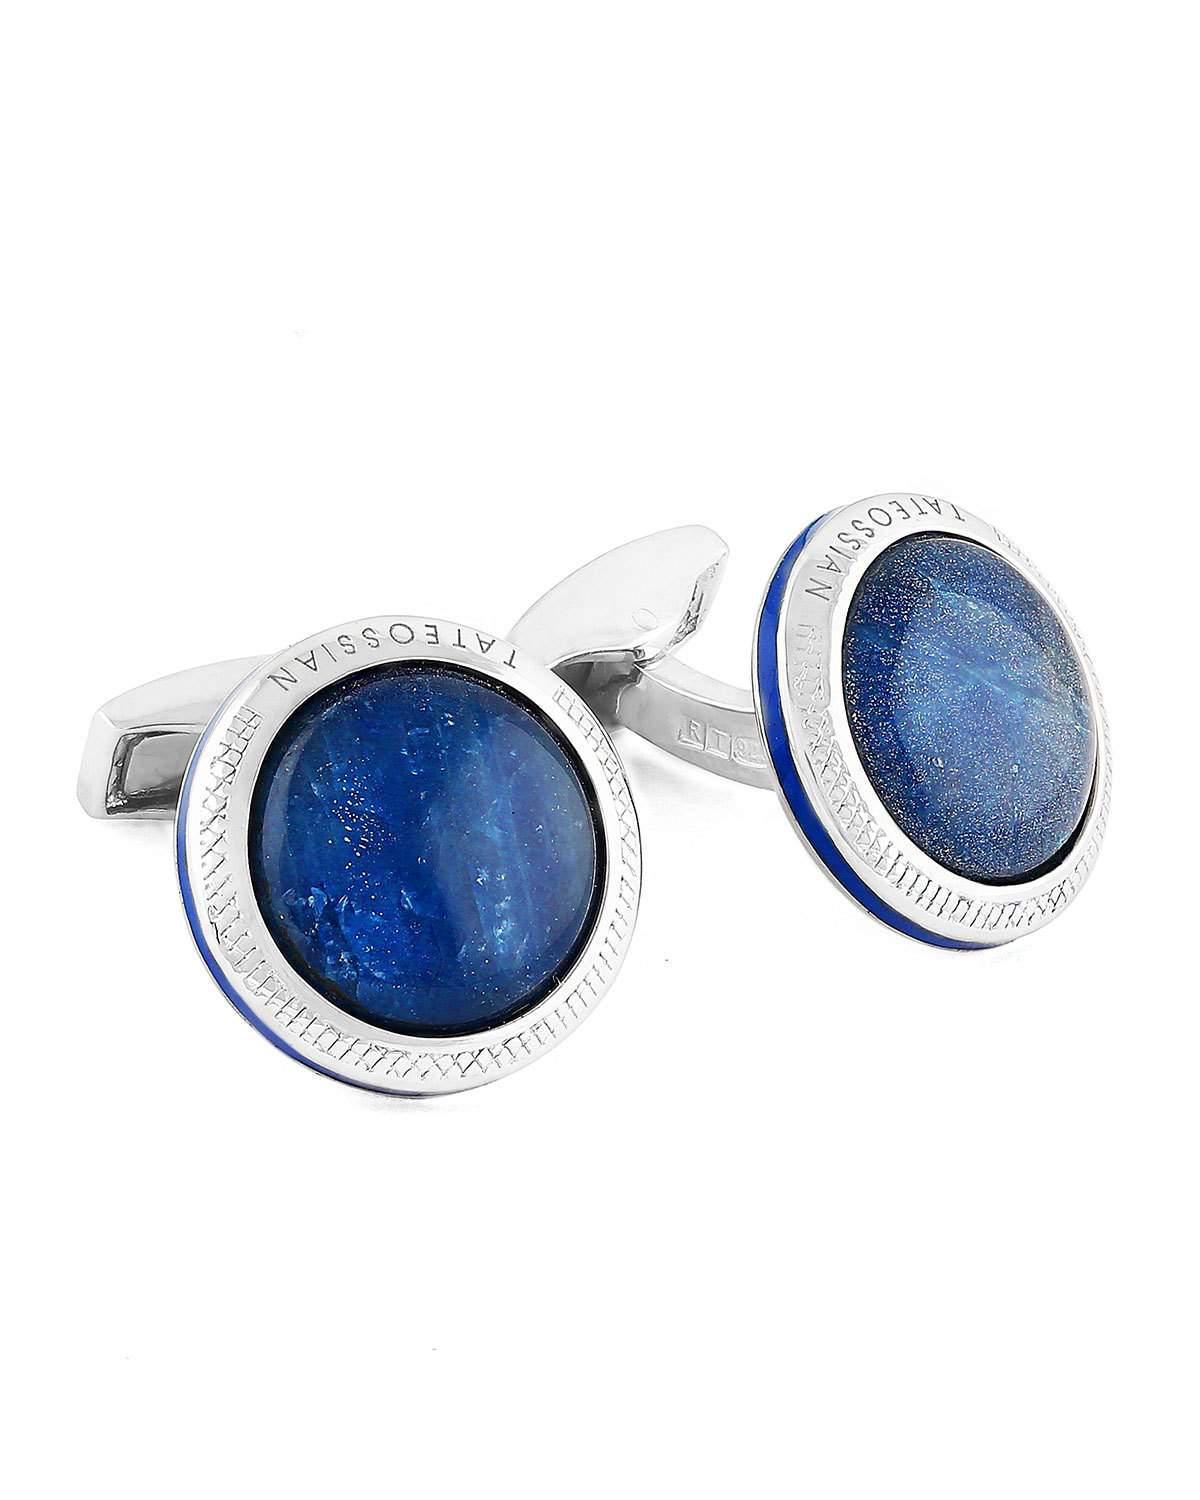 Tateossian Limited Edition Sapphire & Sterling Silver Cuff Links and Stud Set KPOHk